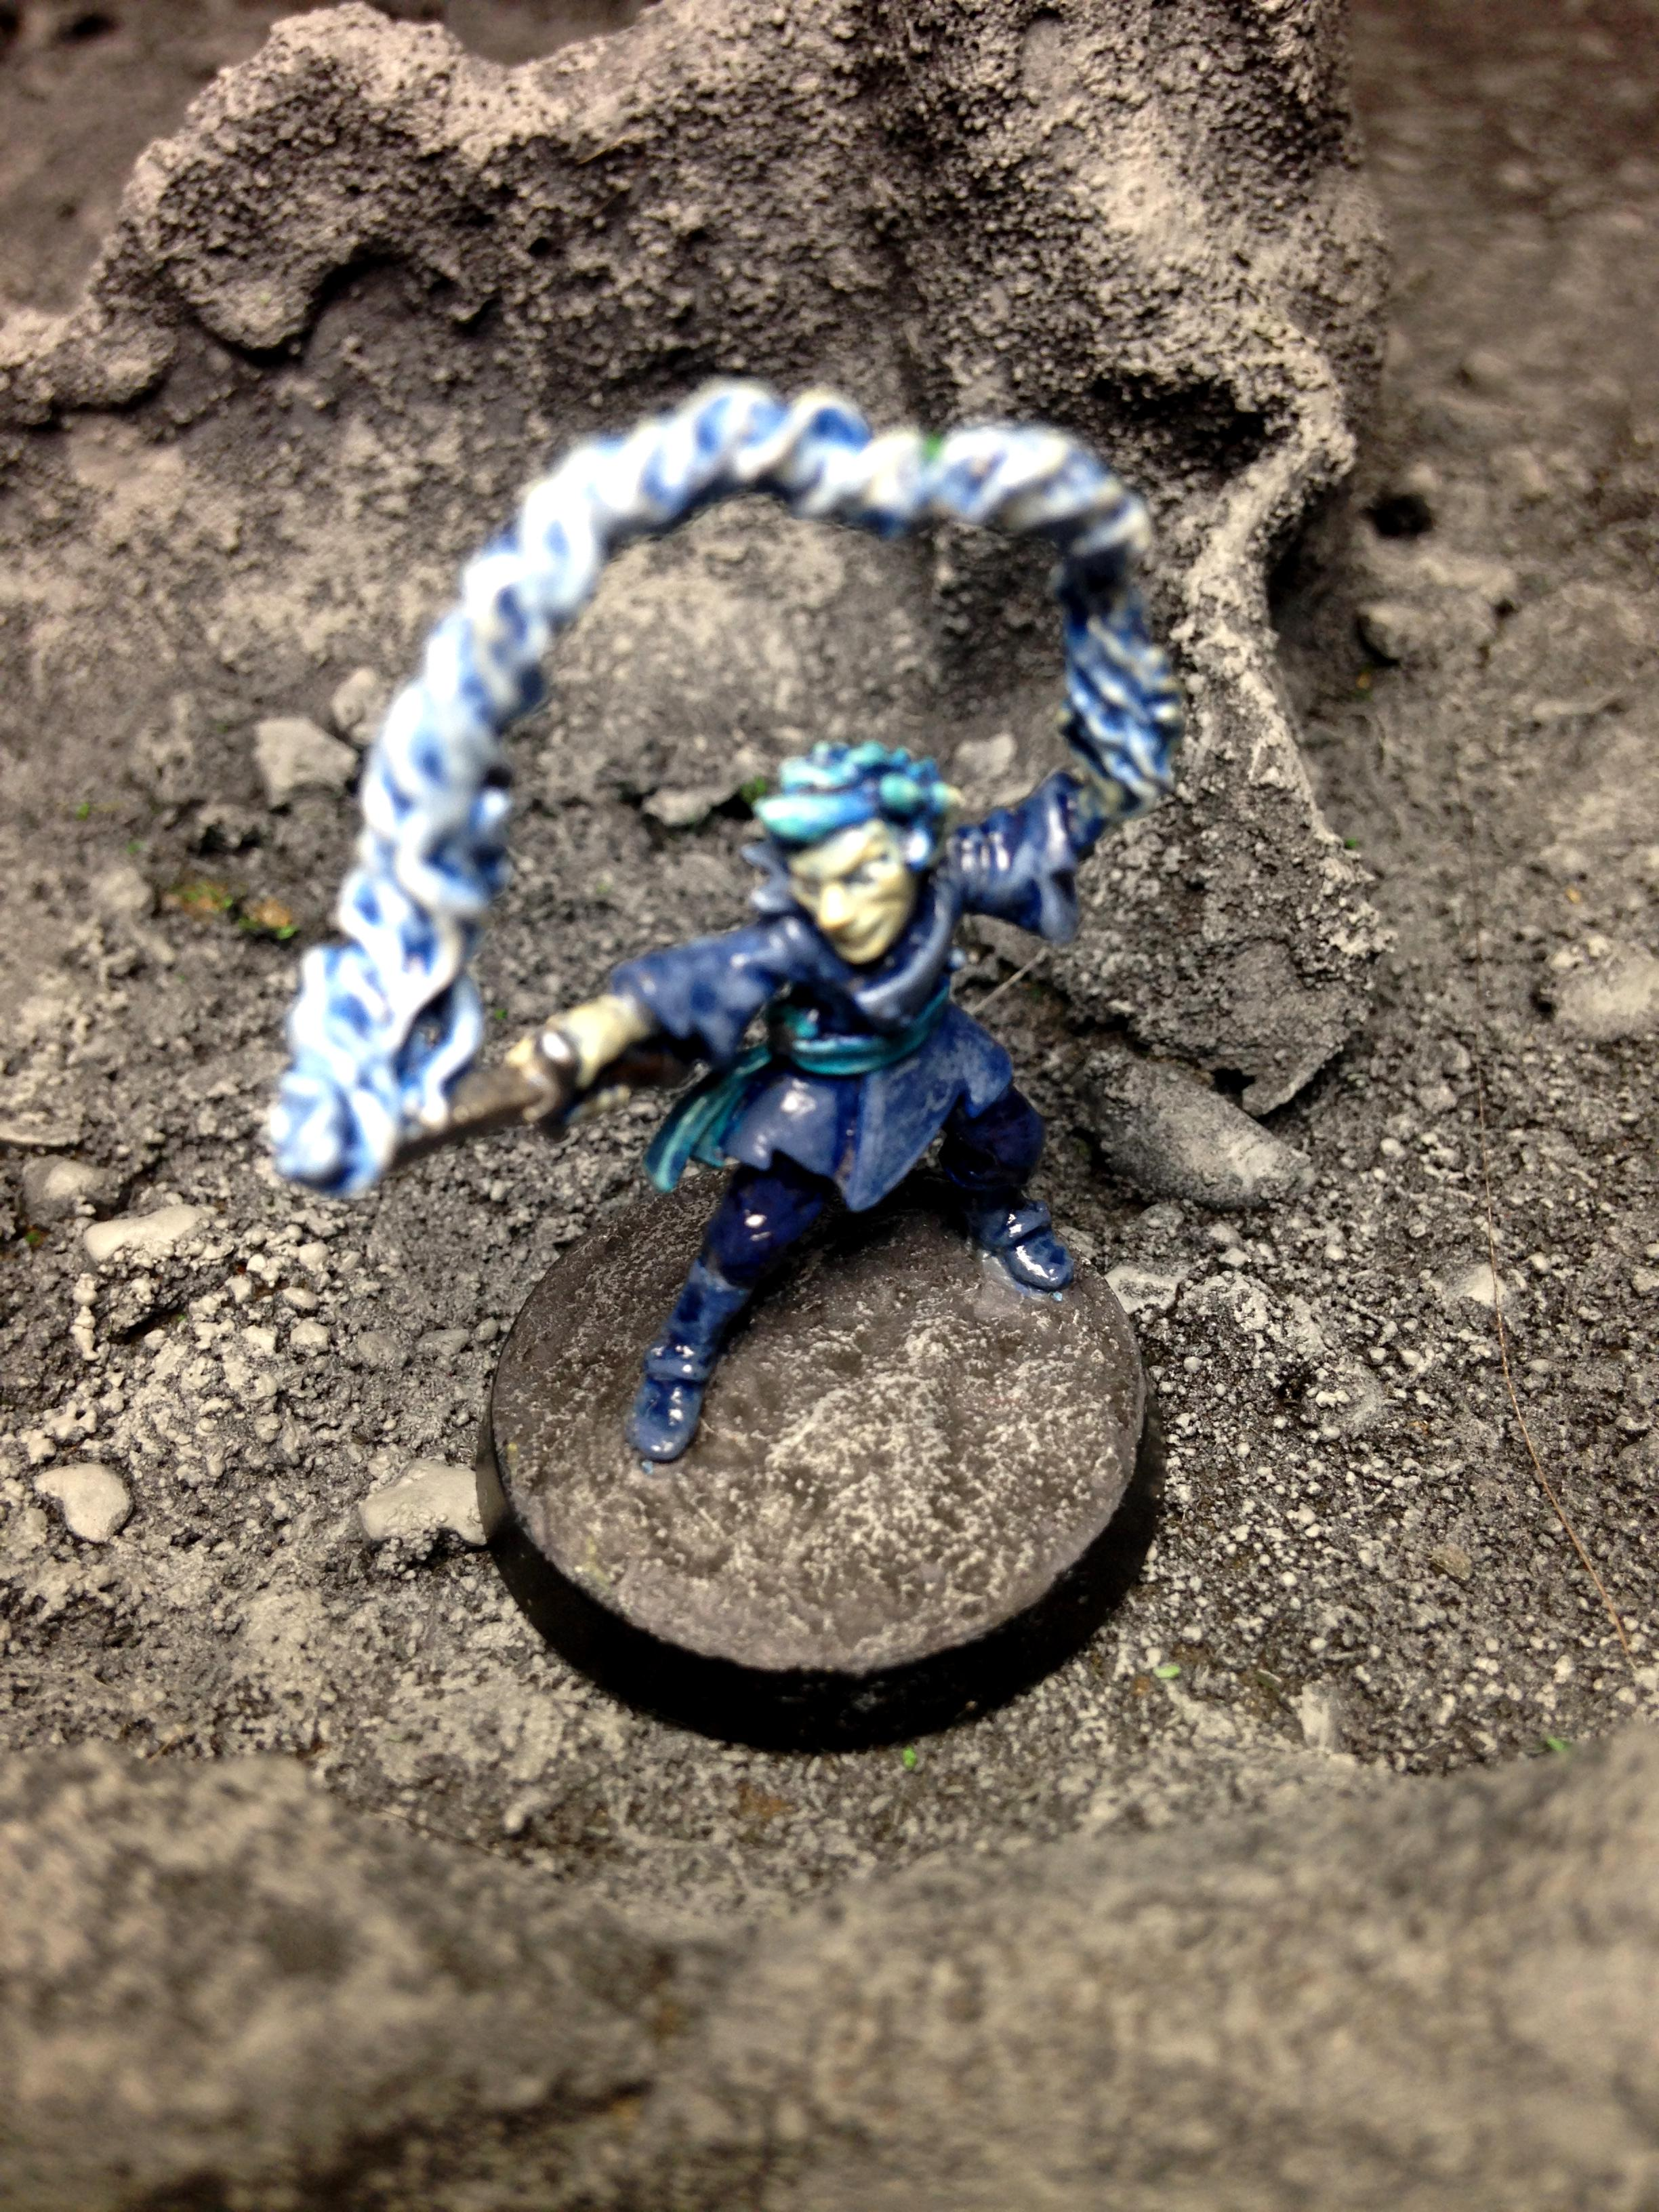 3.5, Arctic, Beguiler, Caster, Cold, Dragon, Dungeons, Dungeons & Dragons, Dungeons And Dragons, Frost, Frost Mage, Gnome, Ice, Roleplay, Rpg, Snow, Sorcerer, Spell, Spellcaster, Warhammer Fantasy, Wizard